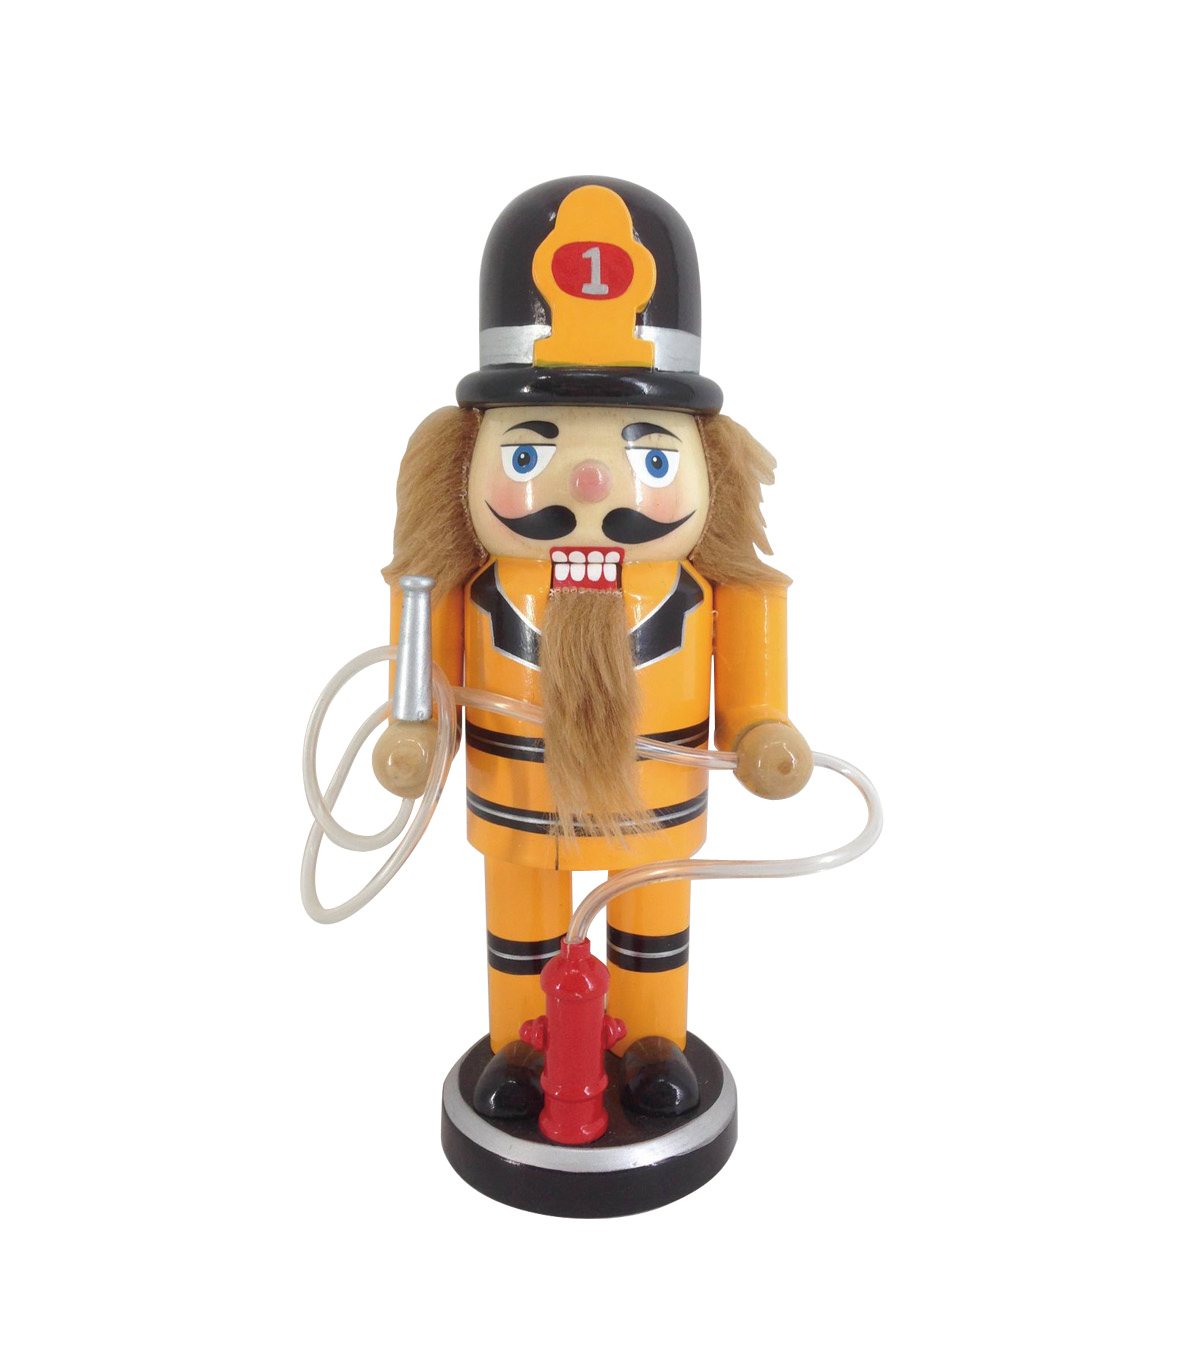 Maker\u0027s Holiday 9\u0027\u0027 Fireman Nutcracker